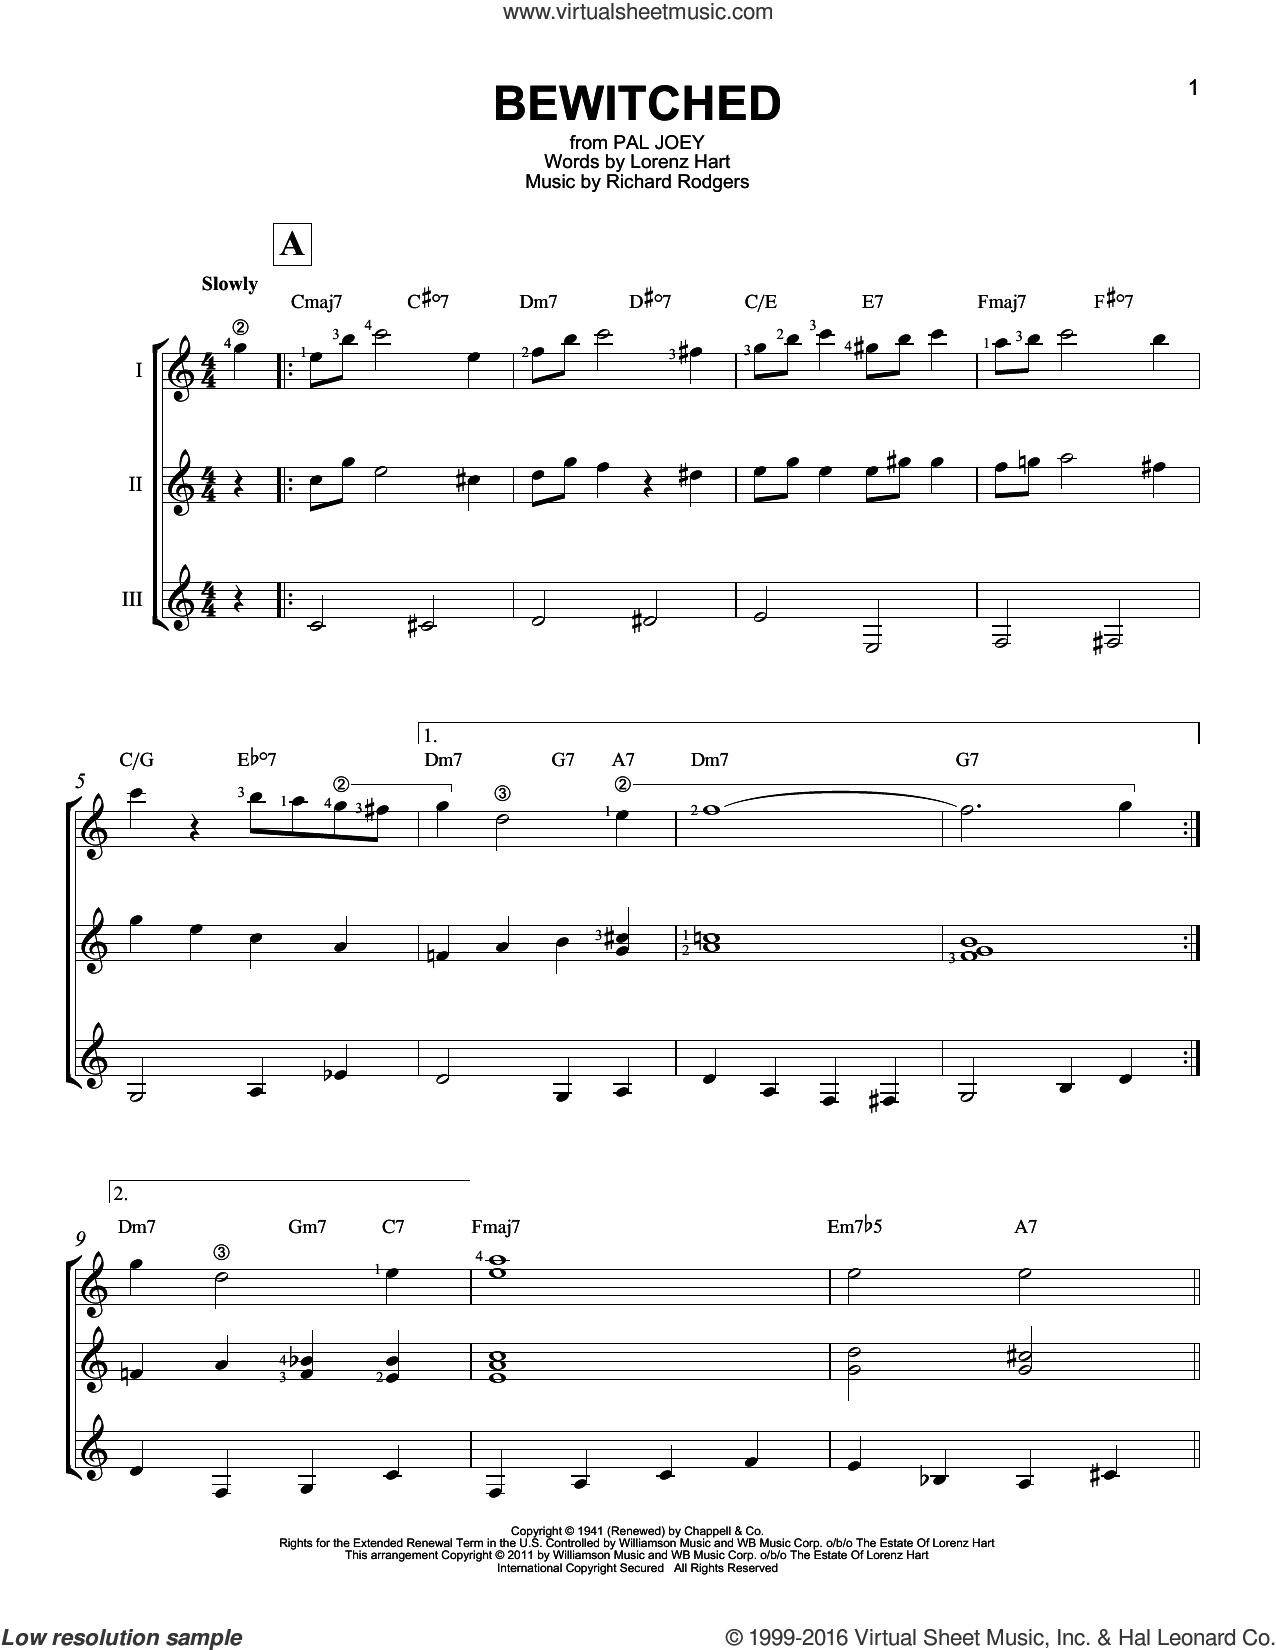 Bewitched sheet music for guitar ensemble by Rodgers & Hart, Lorenz Hart and Richard Rodgers, intermediate skill level